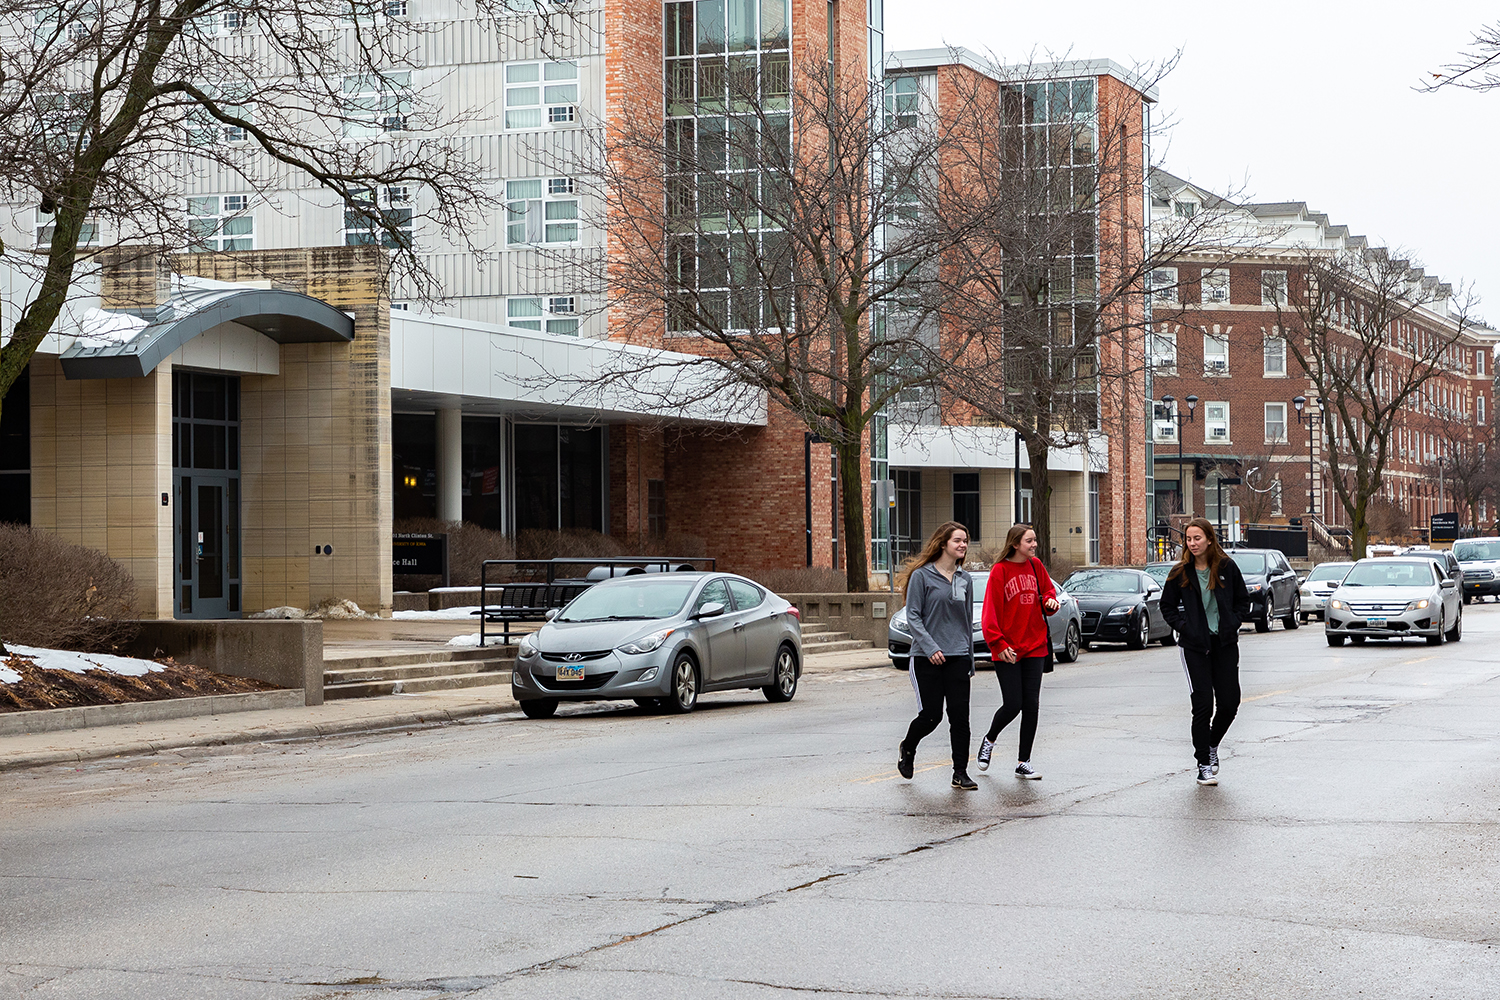 Pedestrians jaywalk across Clinton St. in front of Burge residence hall on Sunday, Feb. 3, 2019. The lack of marked crosswalks on this street prevents pedestrians from crossing in an orderly manner.